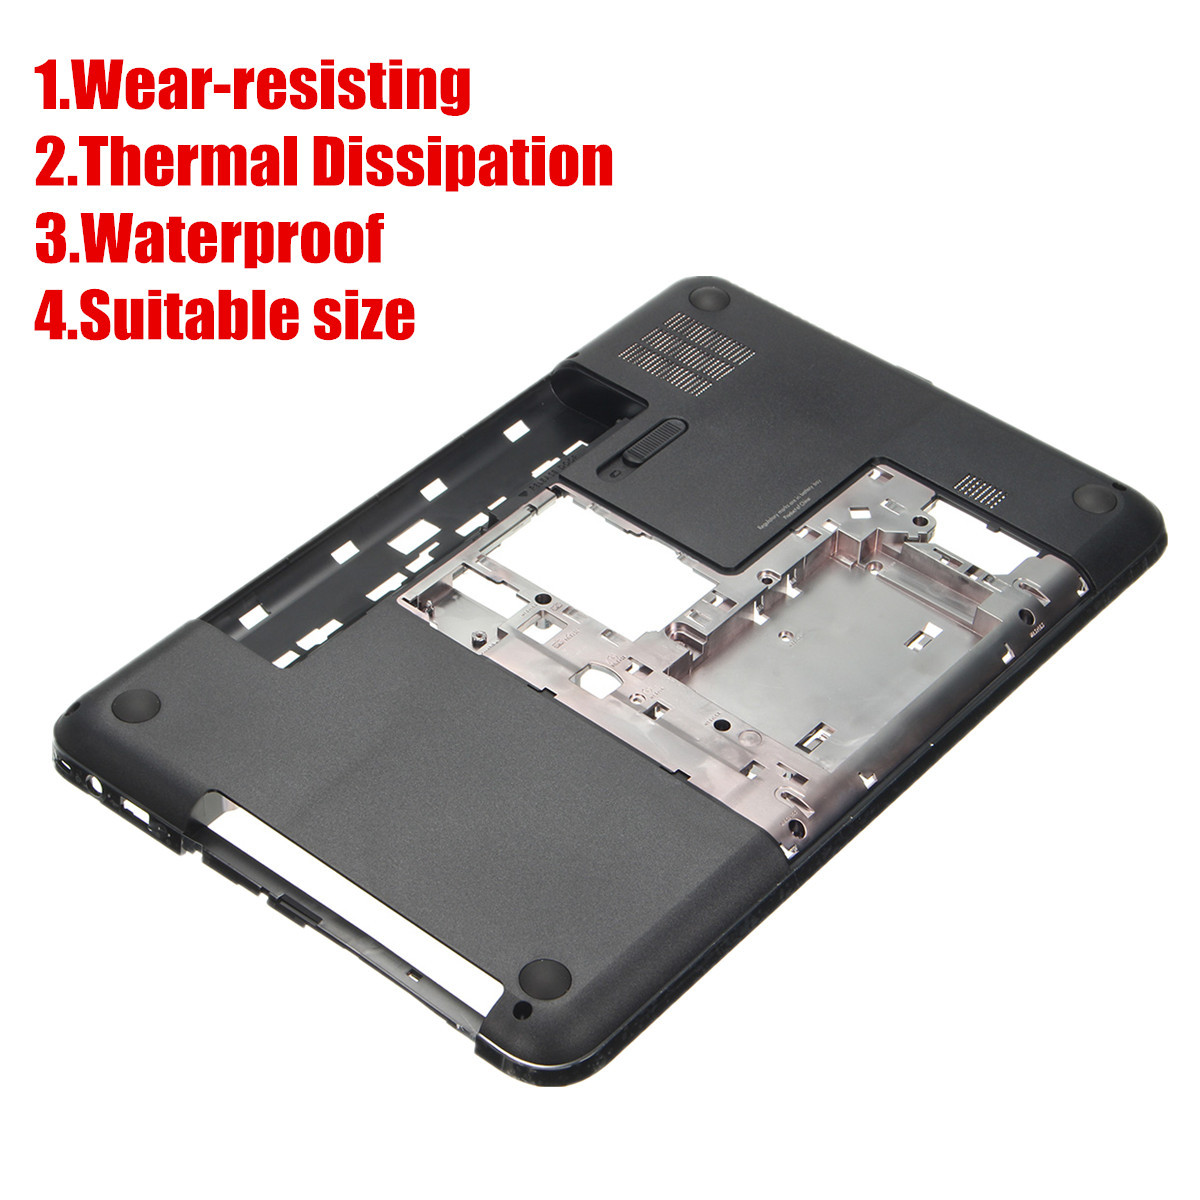 Laptop Bottom Case Base Cover For HP Pavilion G6 G6-2000 G6-2100 Series 681805-001